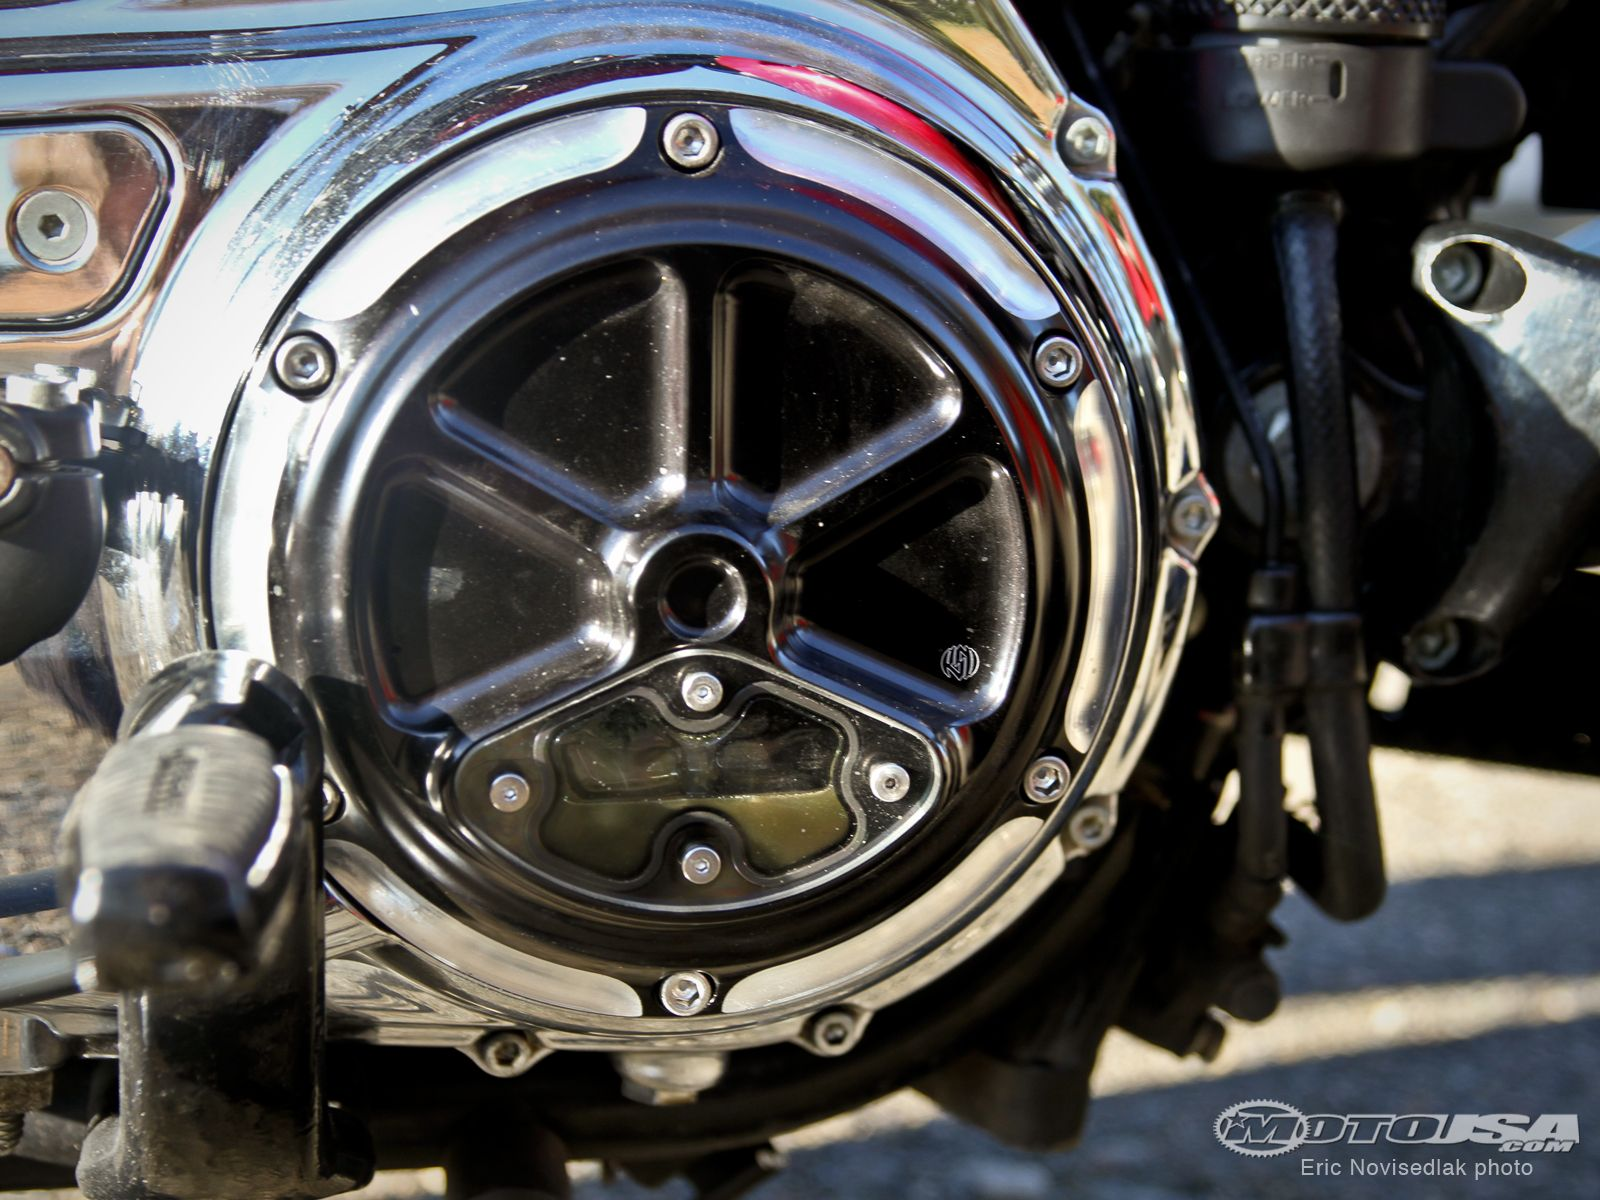 XL sportster derby cover clear see through 6 bolt - Google ...